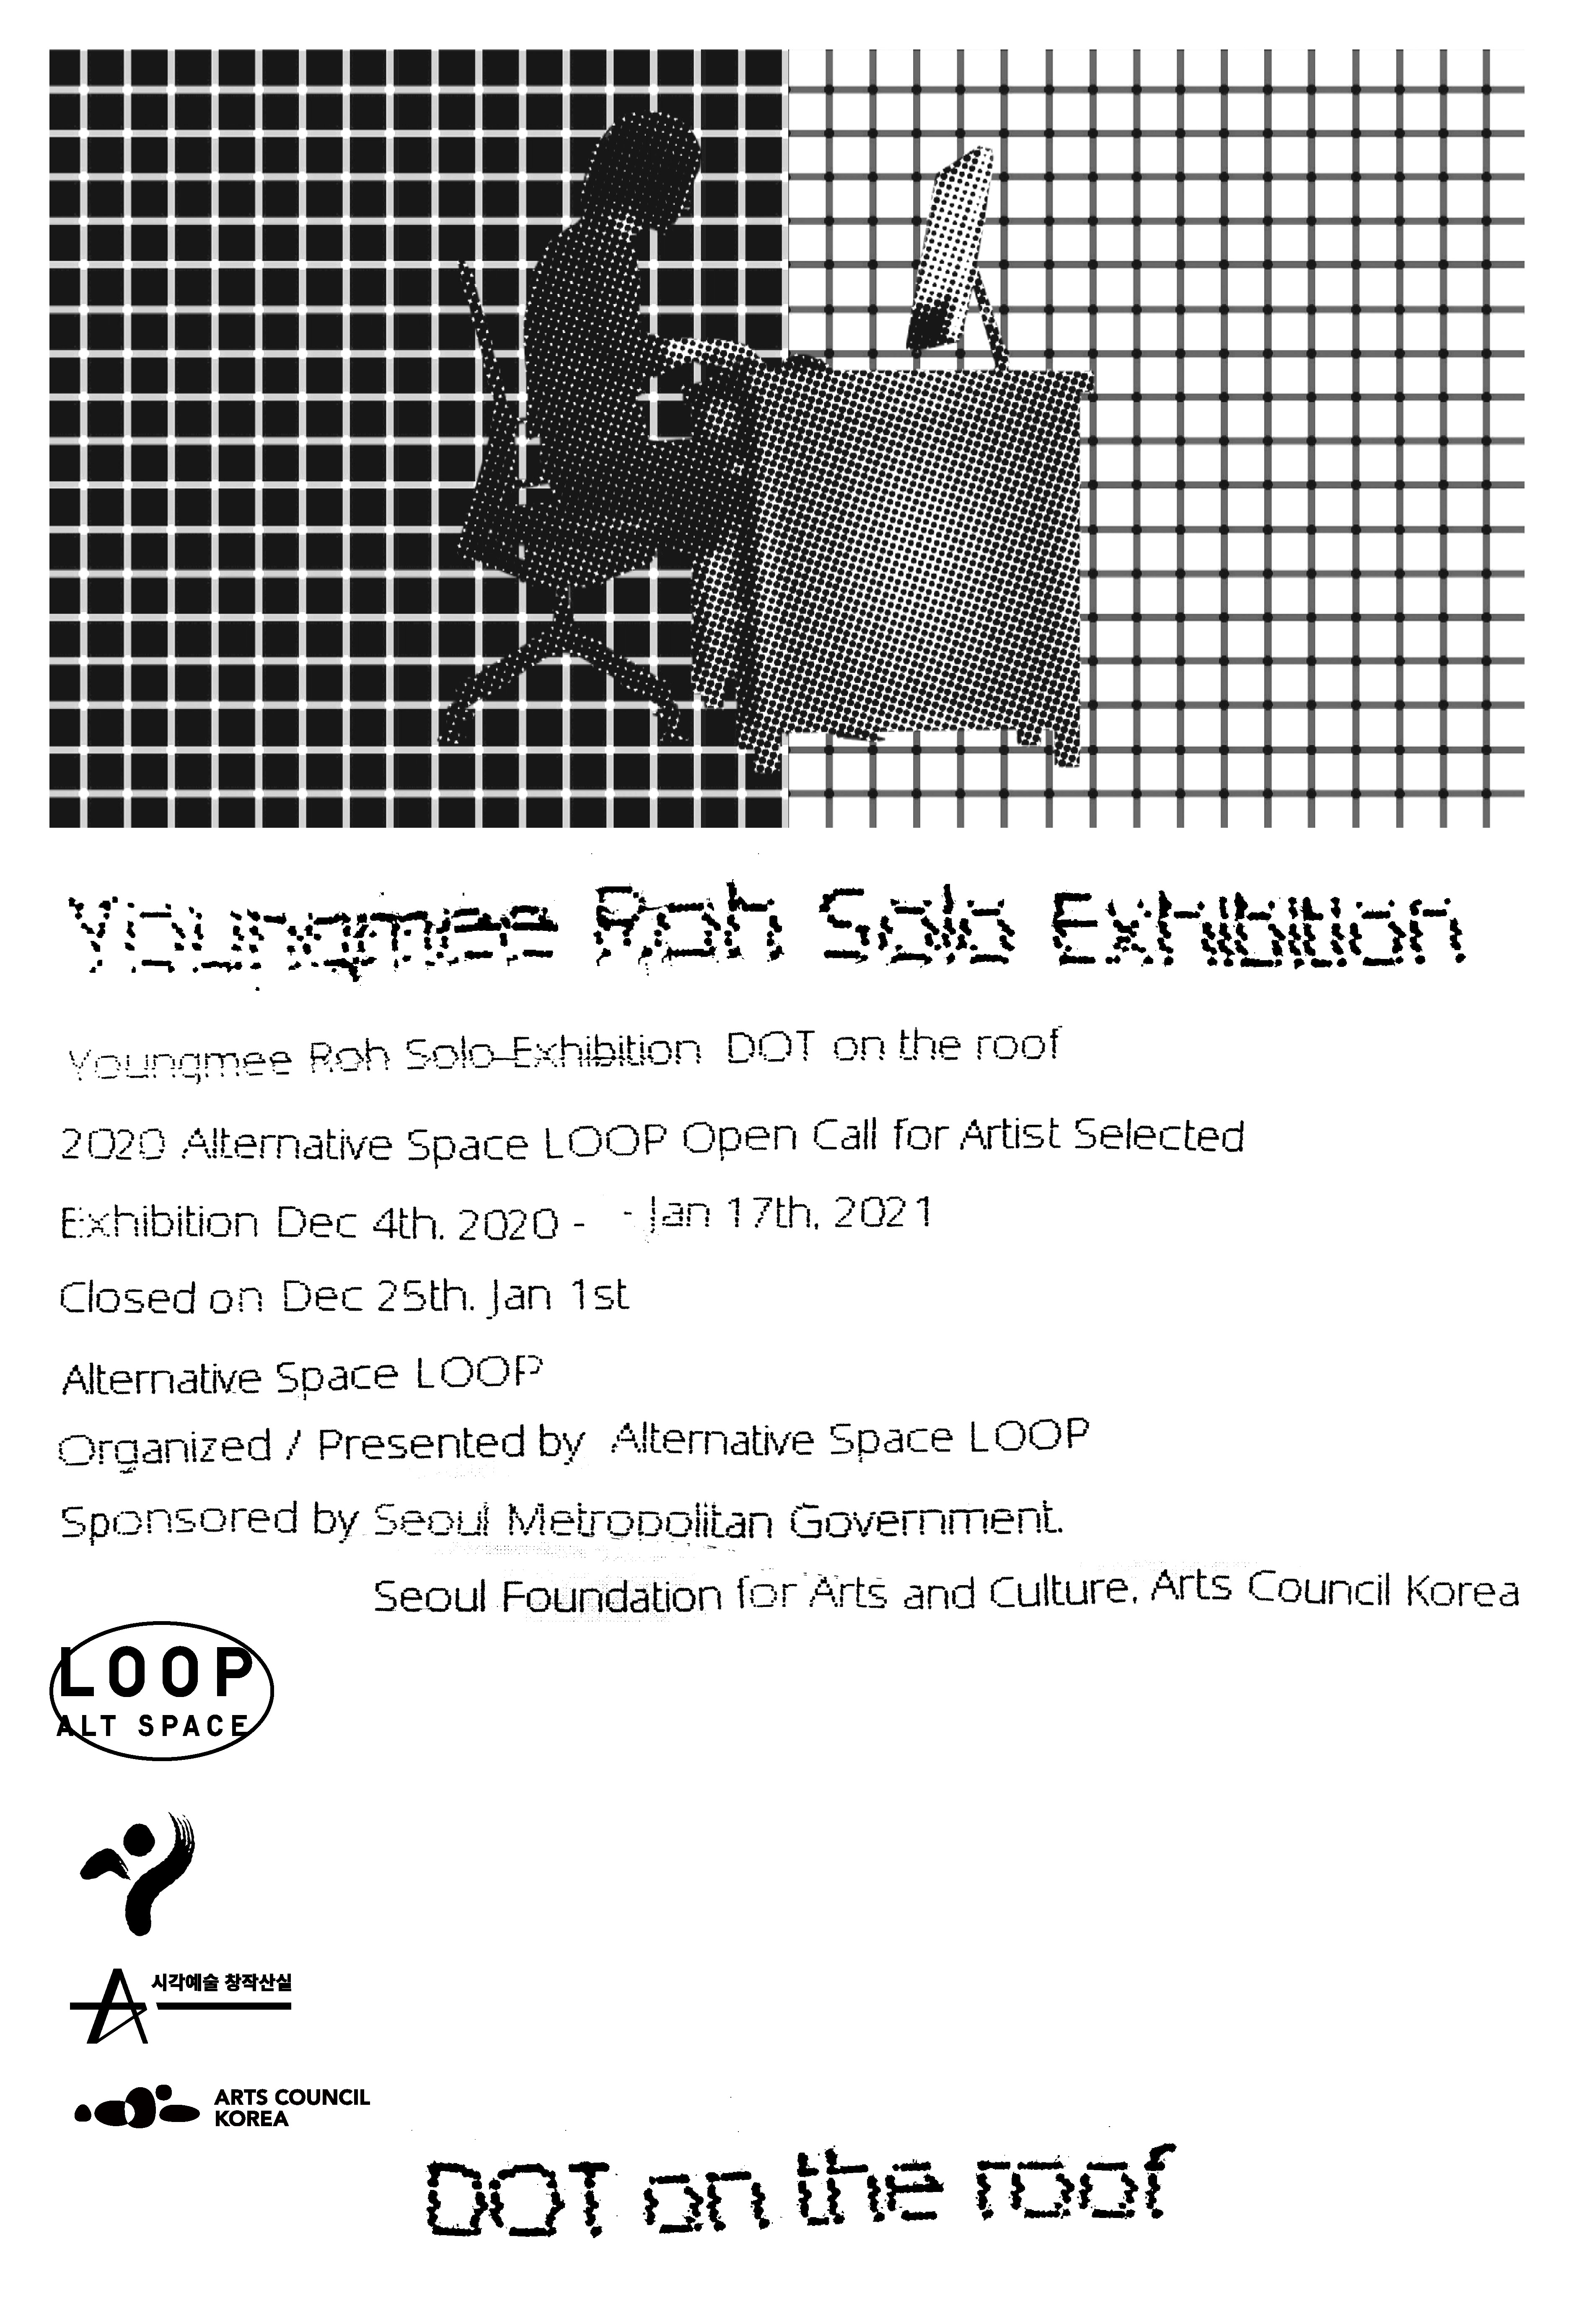 Youngmee Roh Solo Exhibition: DOT on the roof